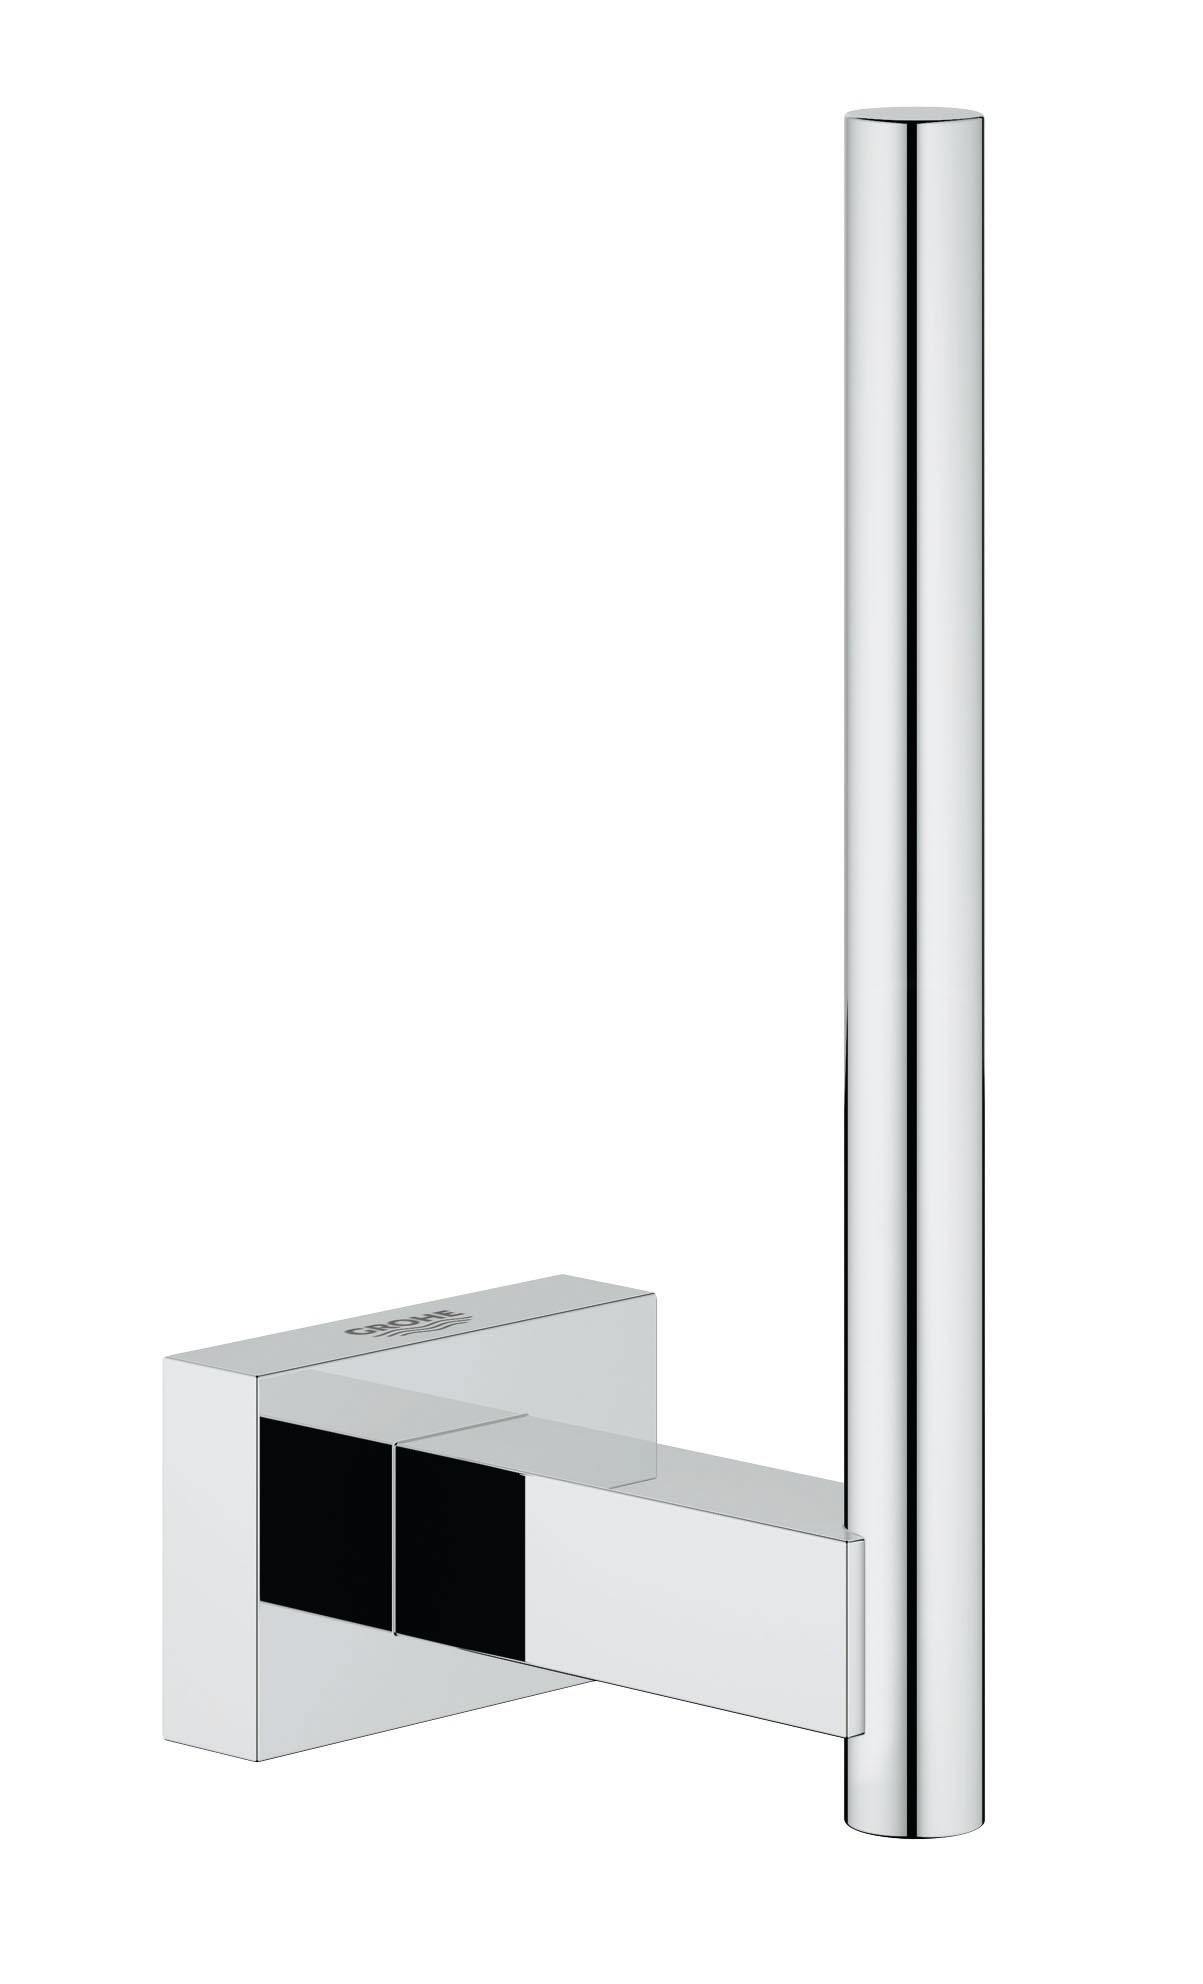 Grohe 40623000 Essentials Cube, ����